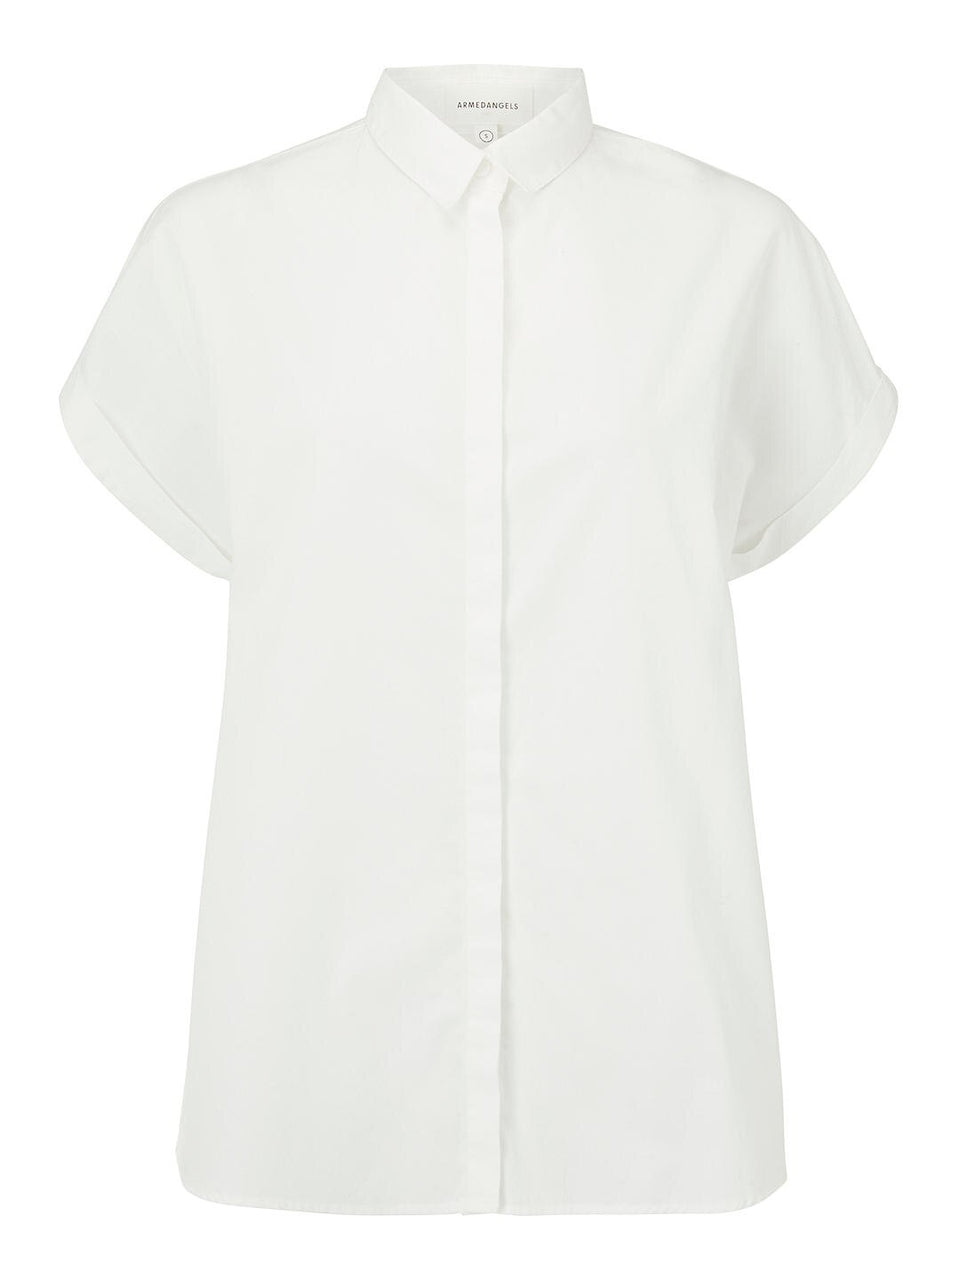 Zonjaa Blouse in White